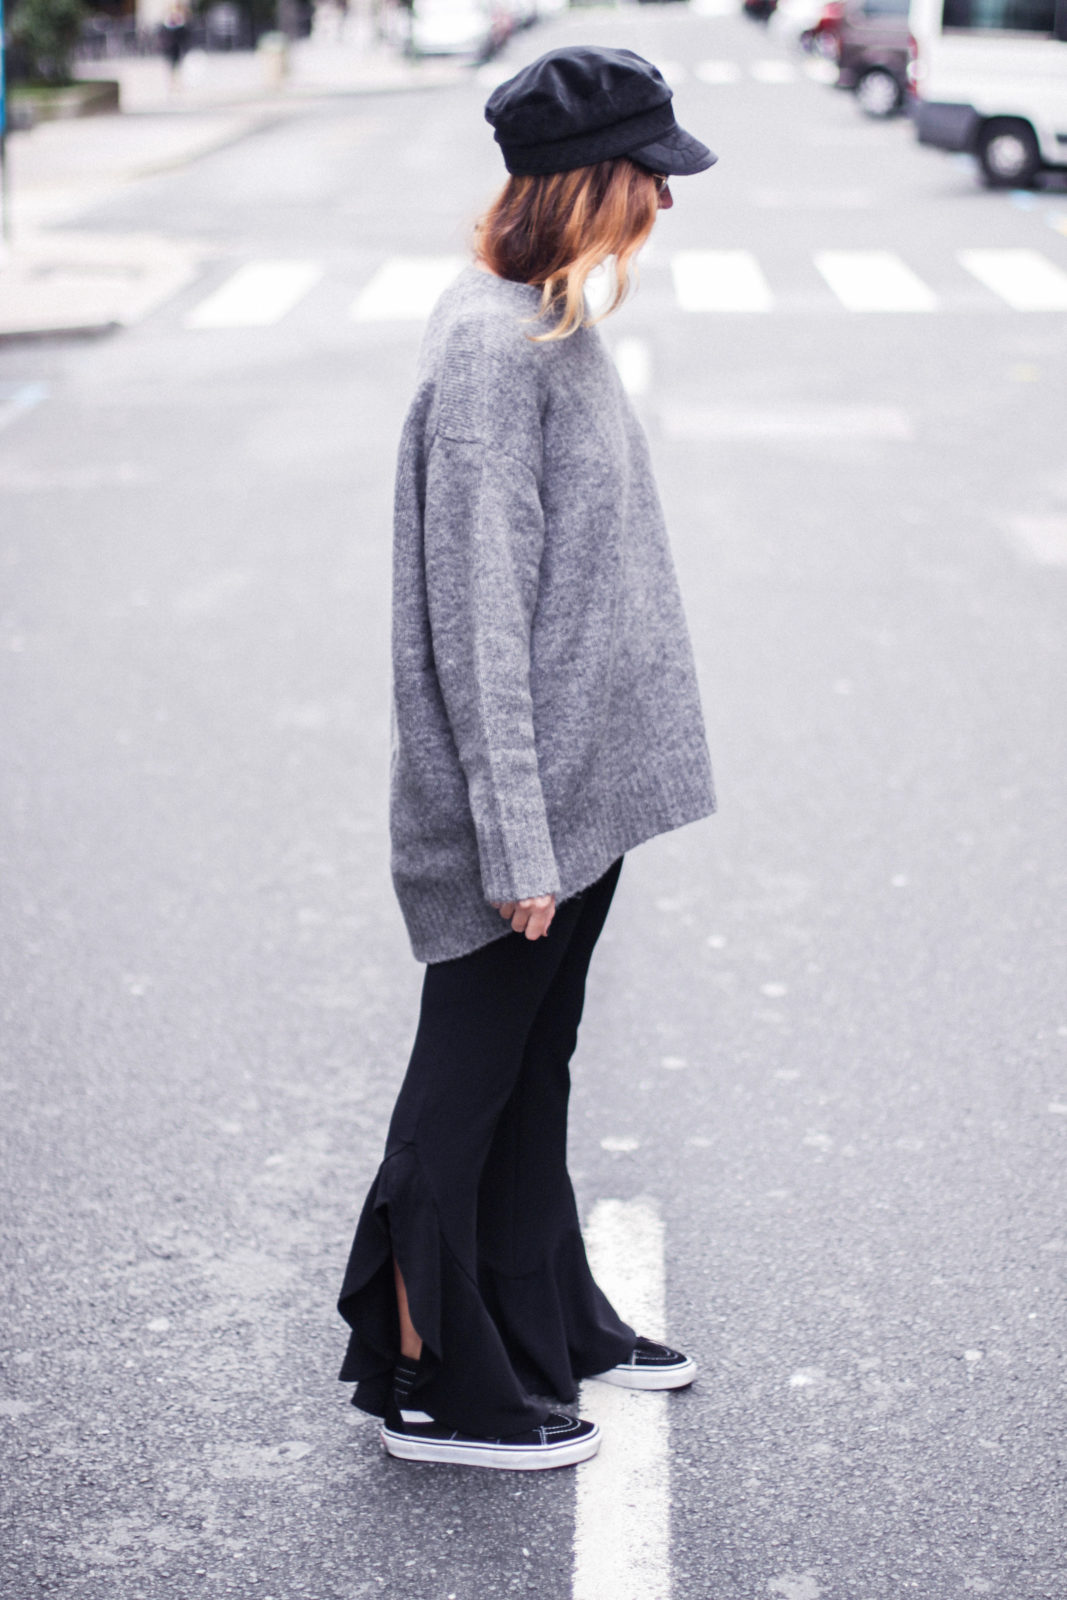 baker_boy_hat_flared_pants_vans_oversize_knit_fall_2016_trends_street_style_outfits_donkeycool-23